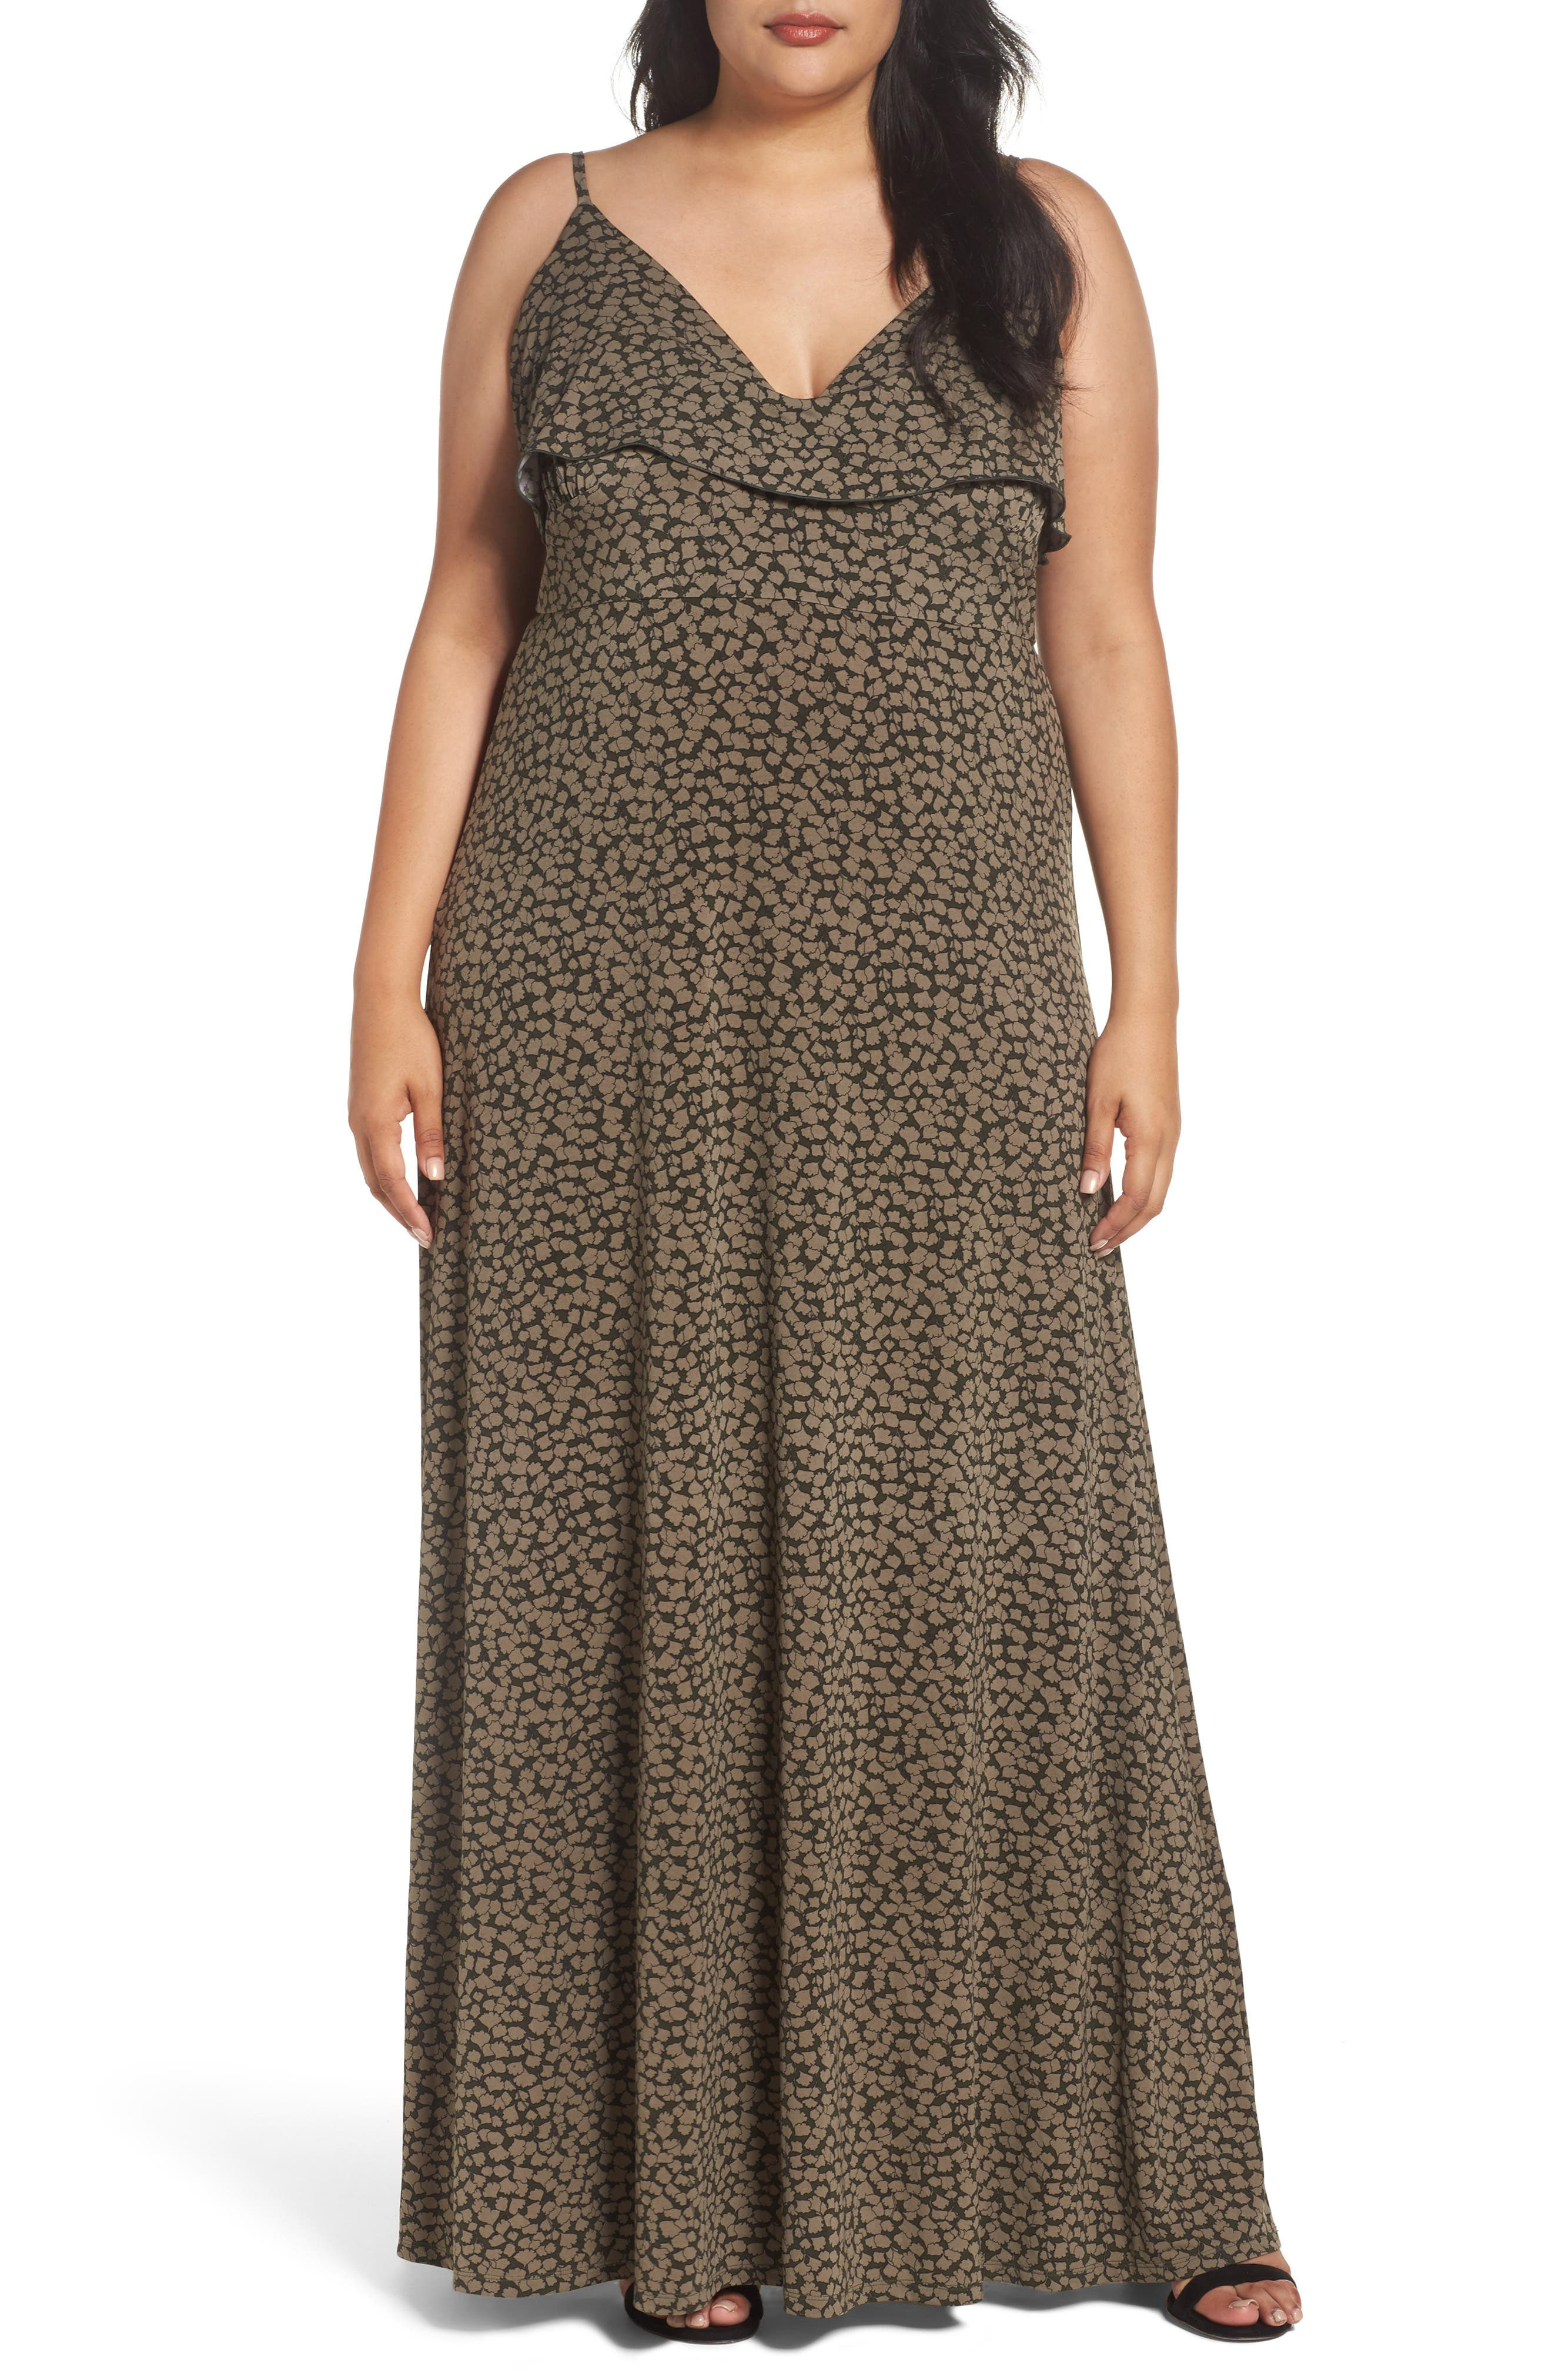 MICHAEL Michael Kors Finley Flounce Maxi Dress (Plus Size)